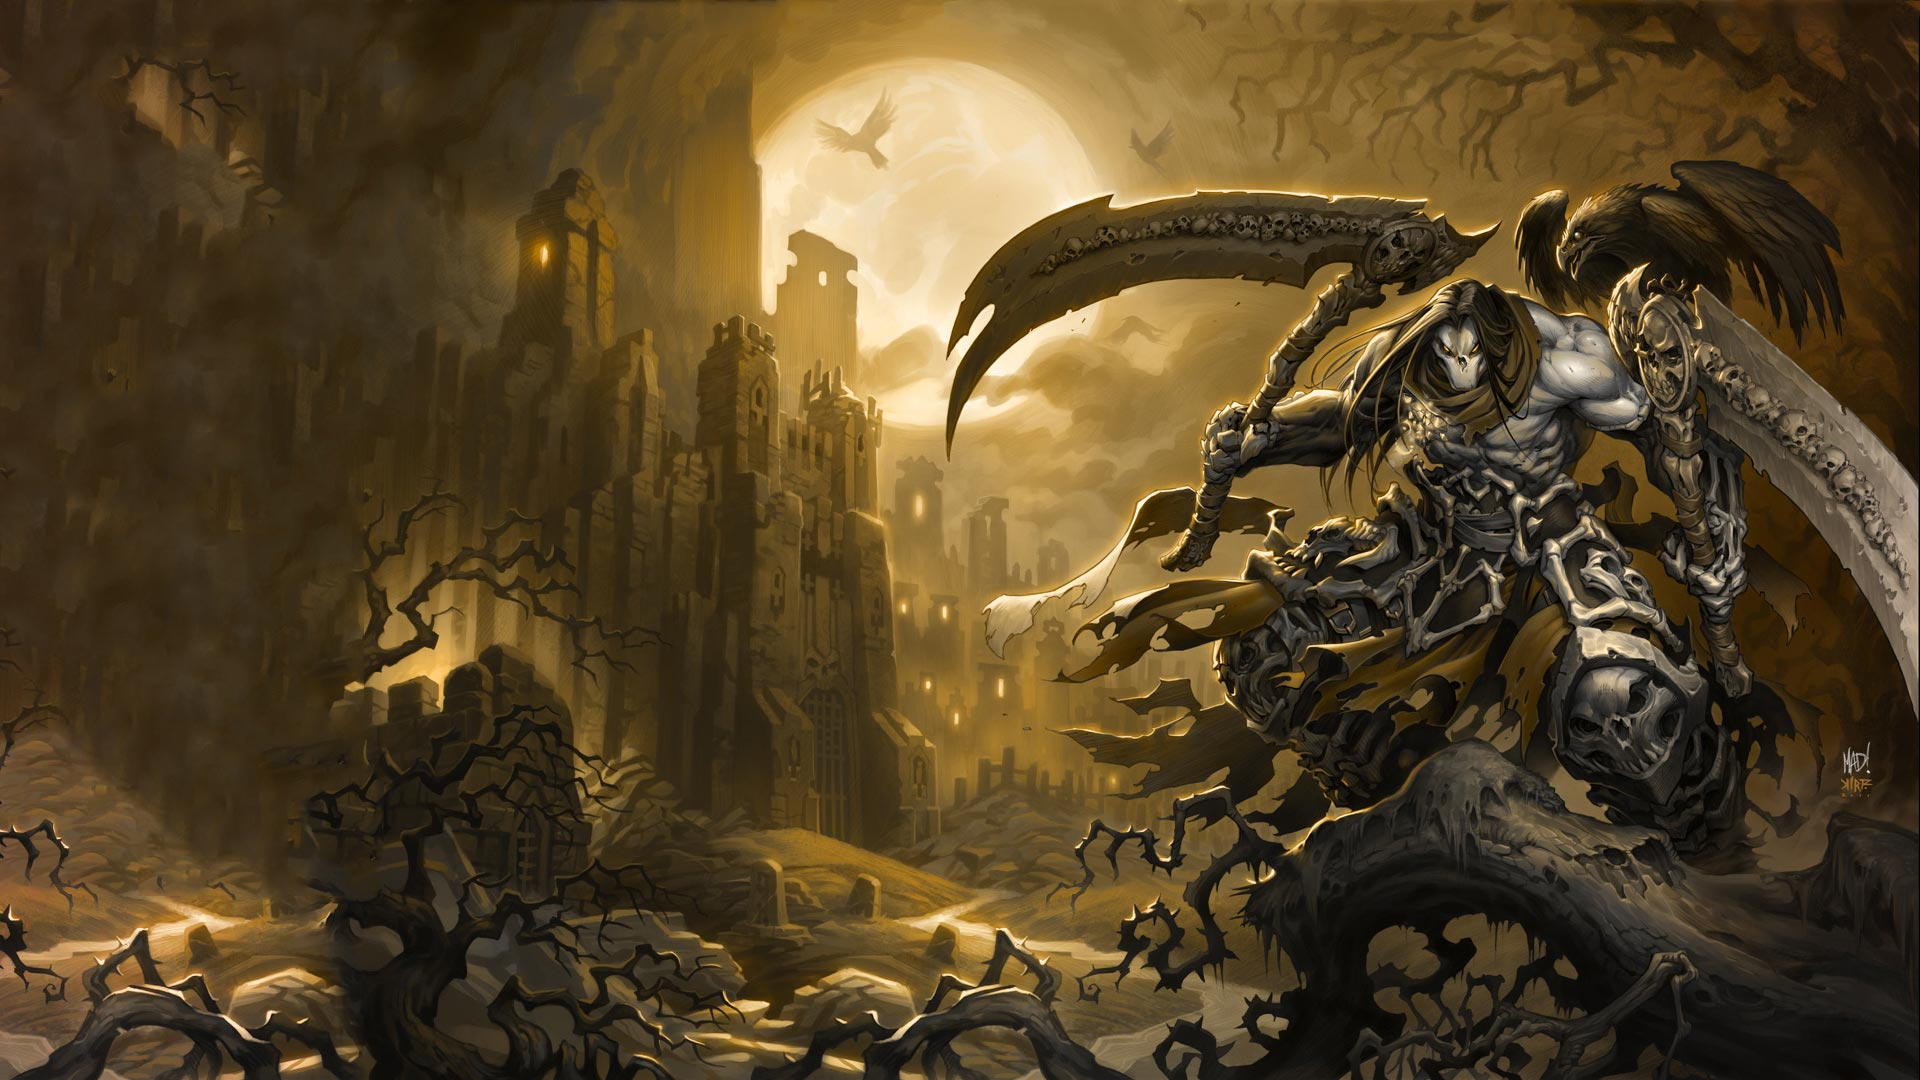 Darksiders 2 HD Wallpaper 19201080 1920x1080